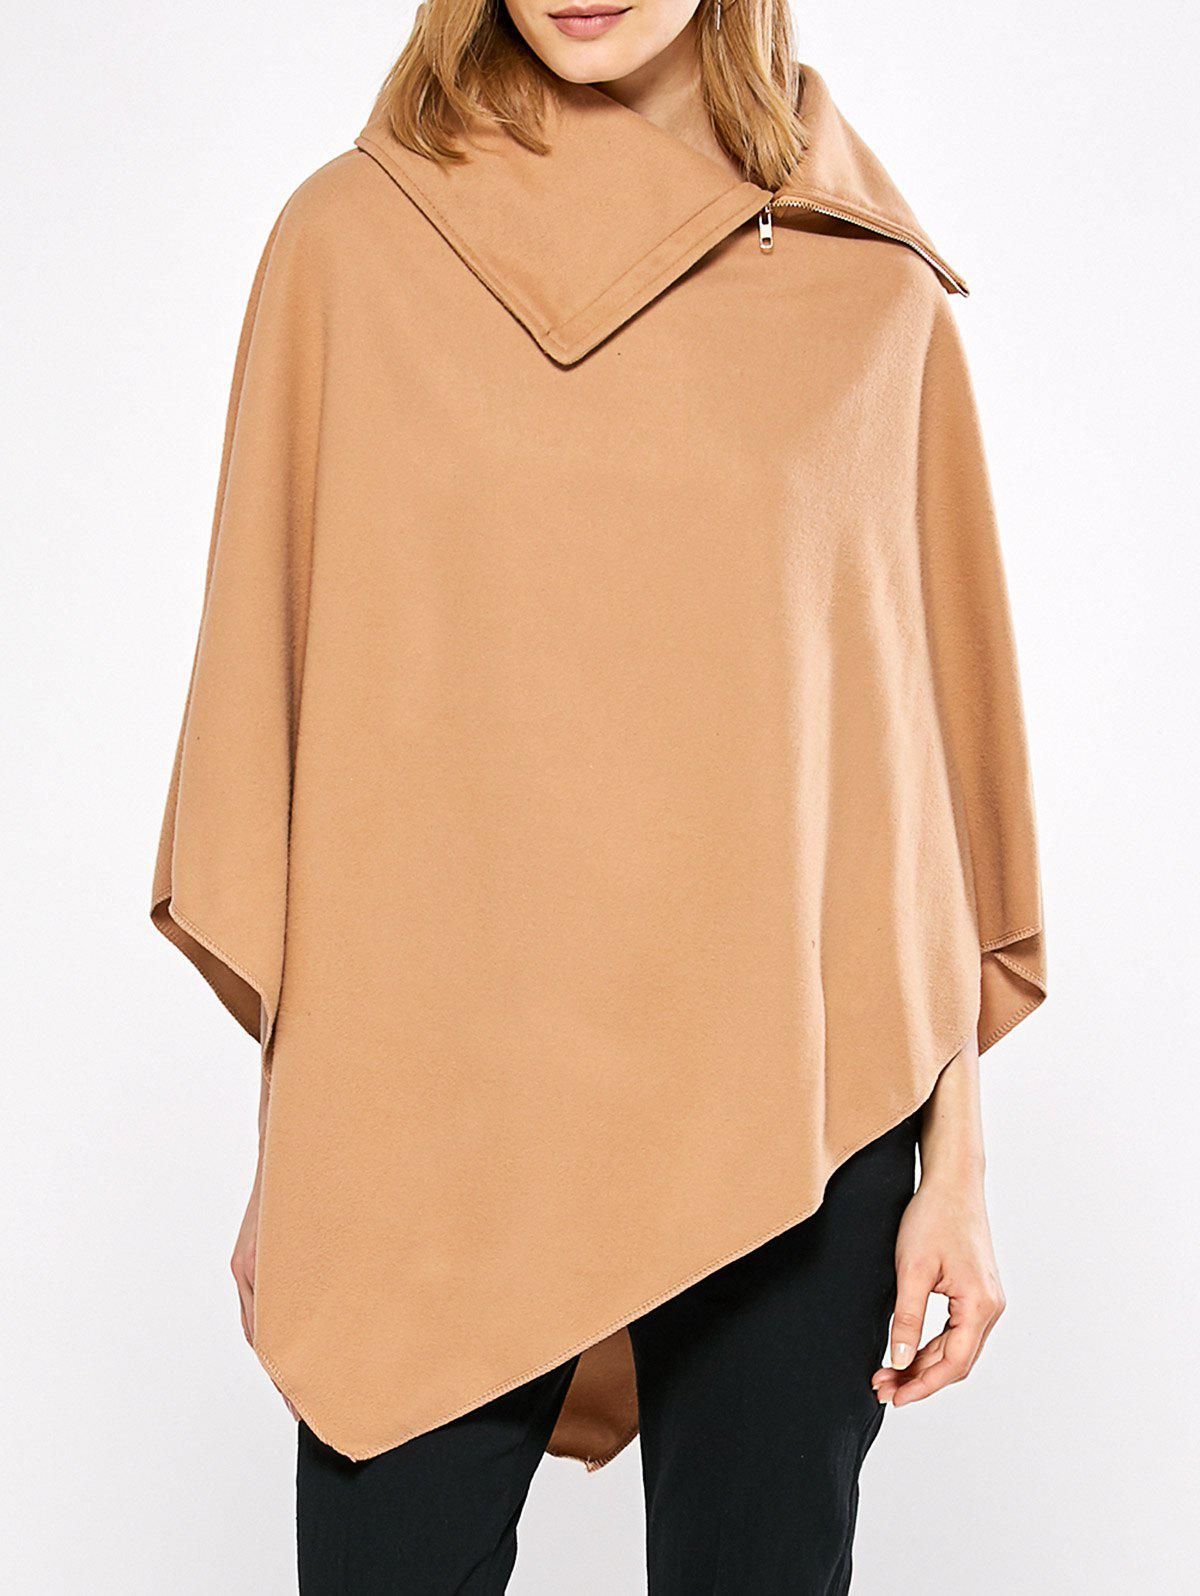 Simple Style Turn-down Collar Loose Women Cloak - CAMEL L